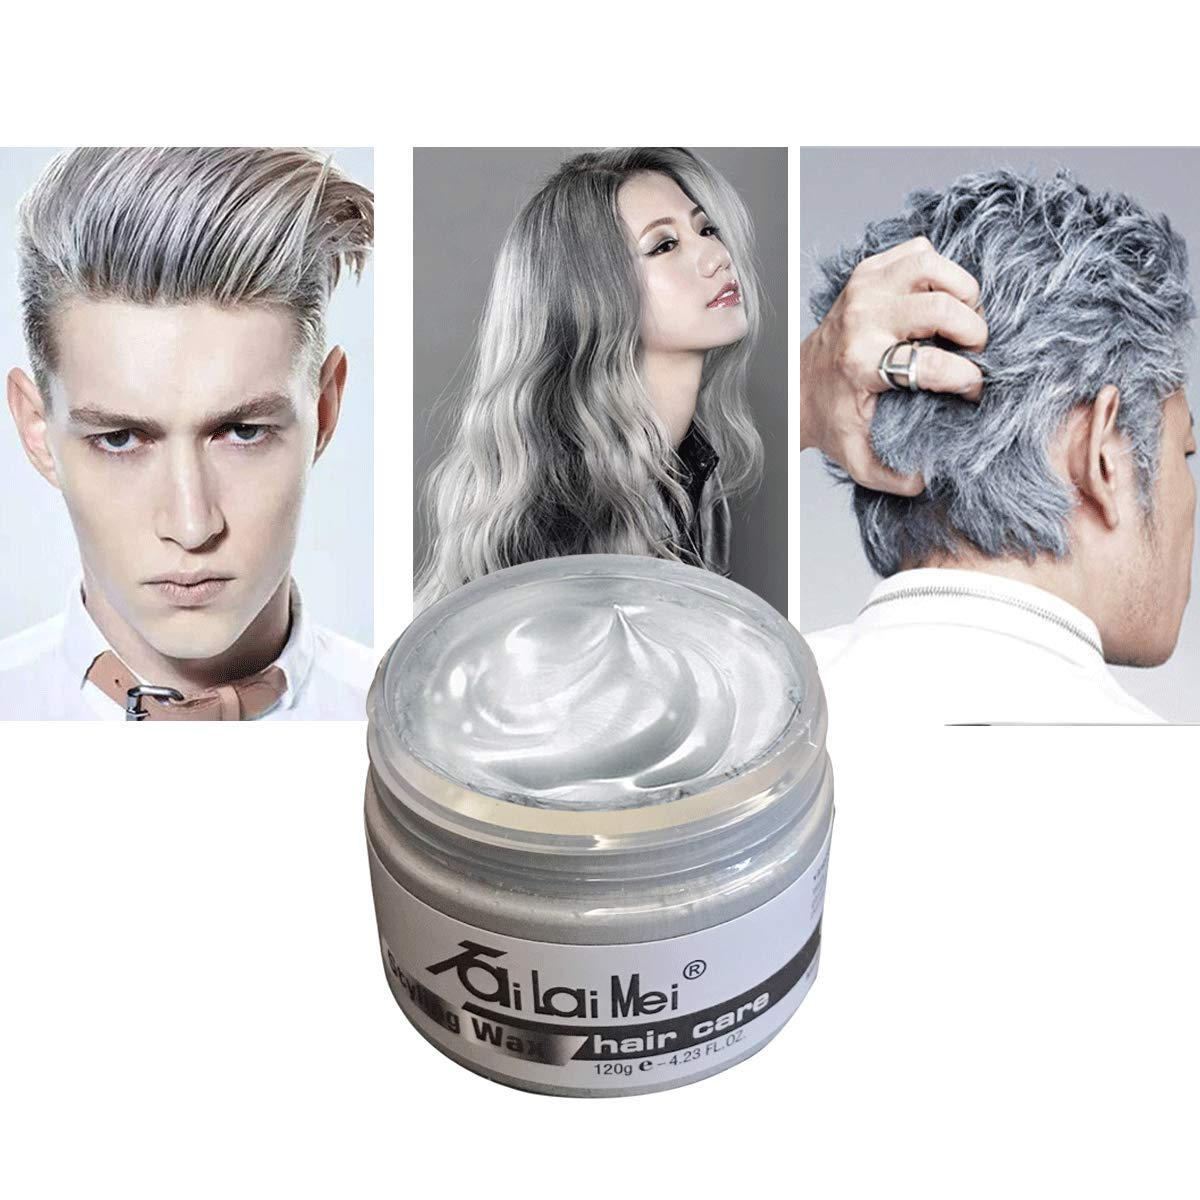 Tailaimei Temporary Silver Gray Hair Wax 4 23oz Instant Hairstyle Mud Cream Hair Pomades For Party Cosplay Nightclub Masquerade Halloween Buy Online In Cayman Islands At Cayman Desertcart Com Productid 92153382